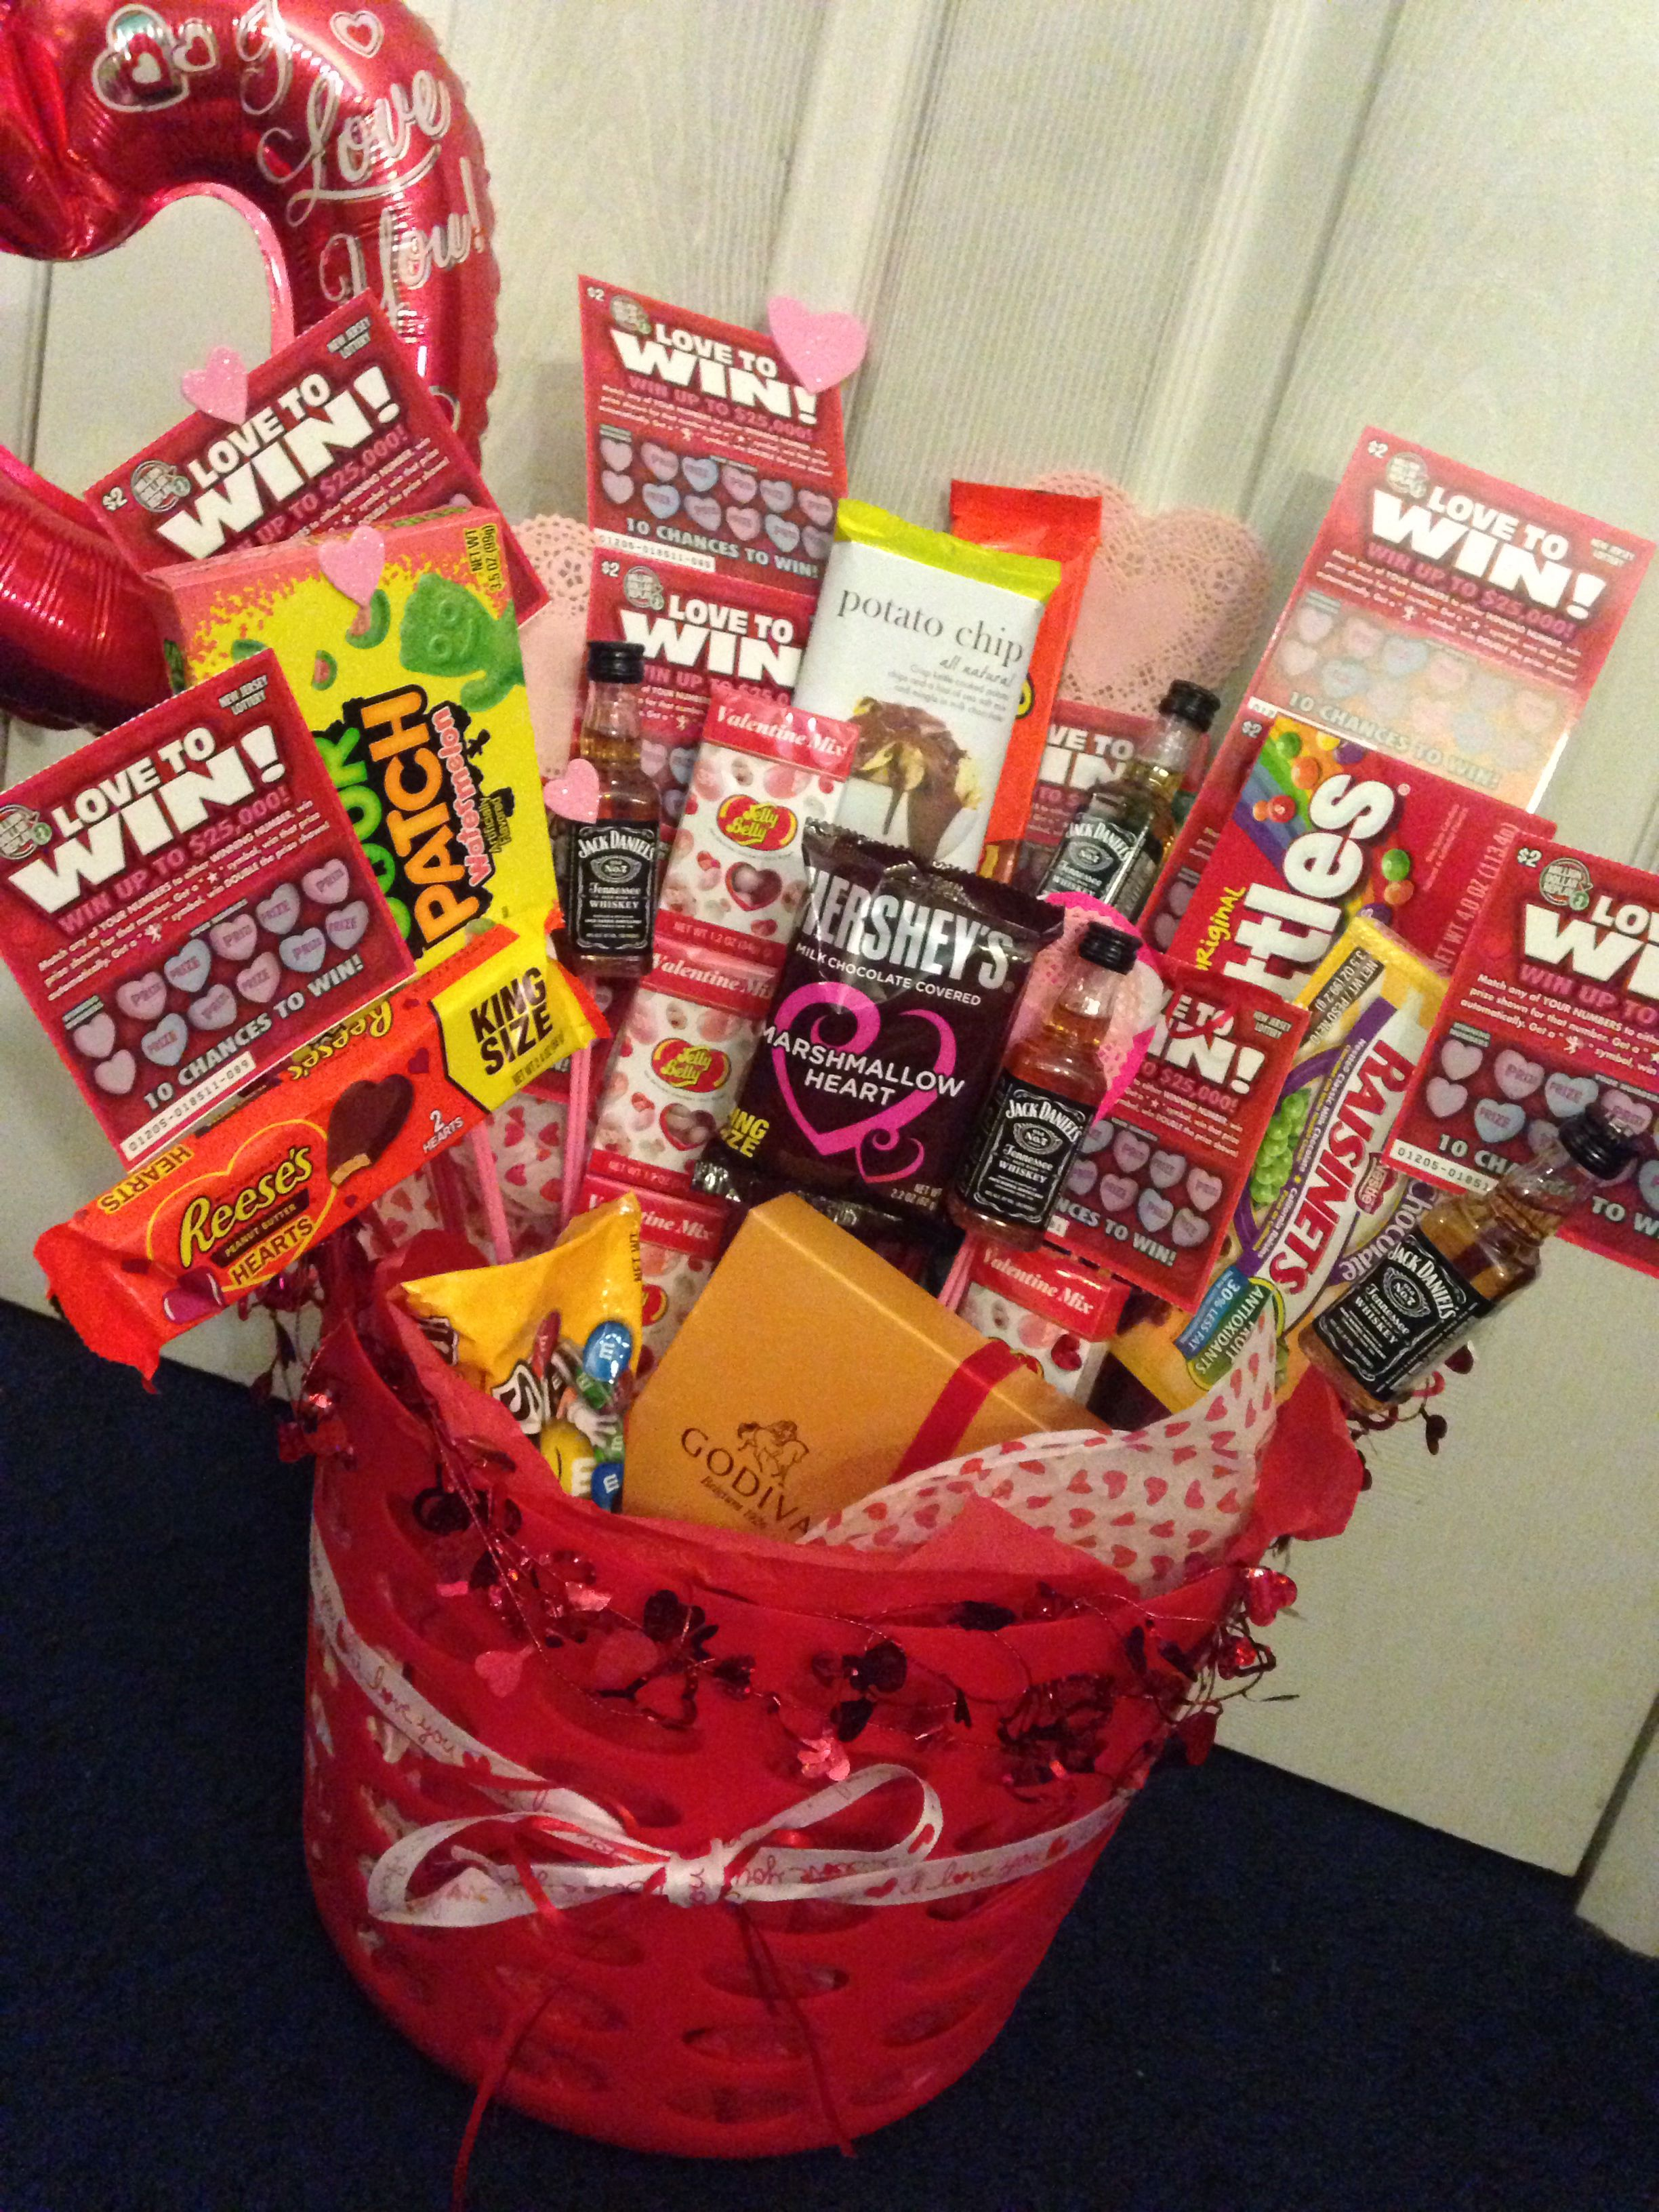 Pin By Alyss Wallschleger On Diy Gifts Valentine S Day Gift Baskets Valentines Candy Bouquet Cute Valentines Day Gifts